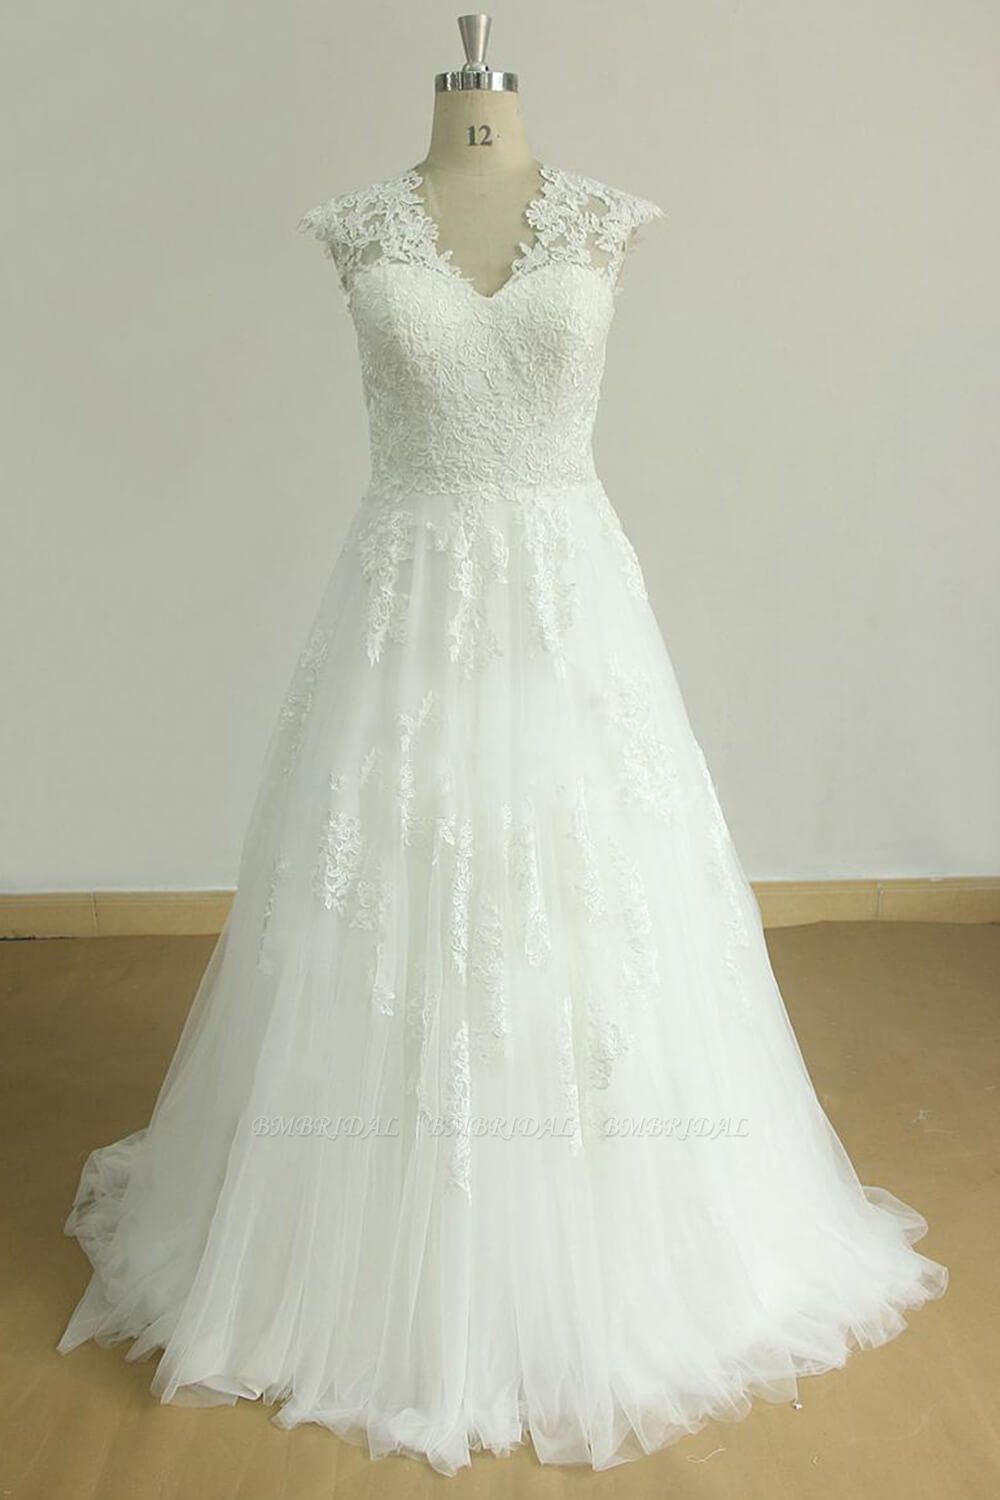 Glamorous Sleeveless Appliques Tulle Wedding Dresses A-line Lace Straps Bridal Gowns On Sale